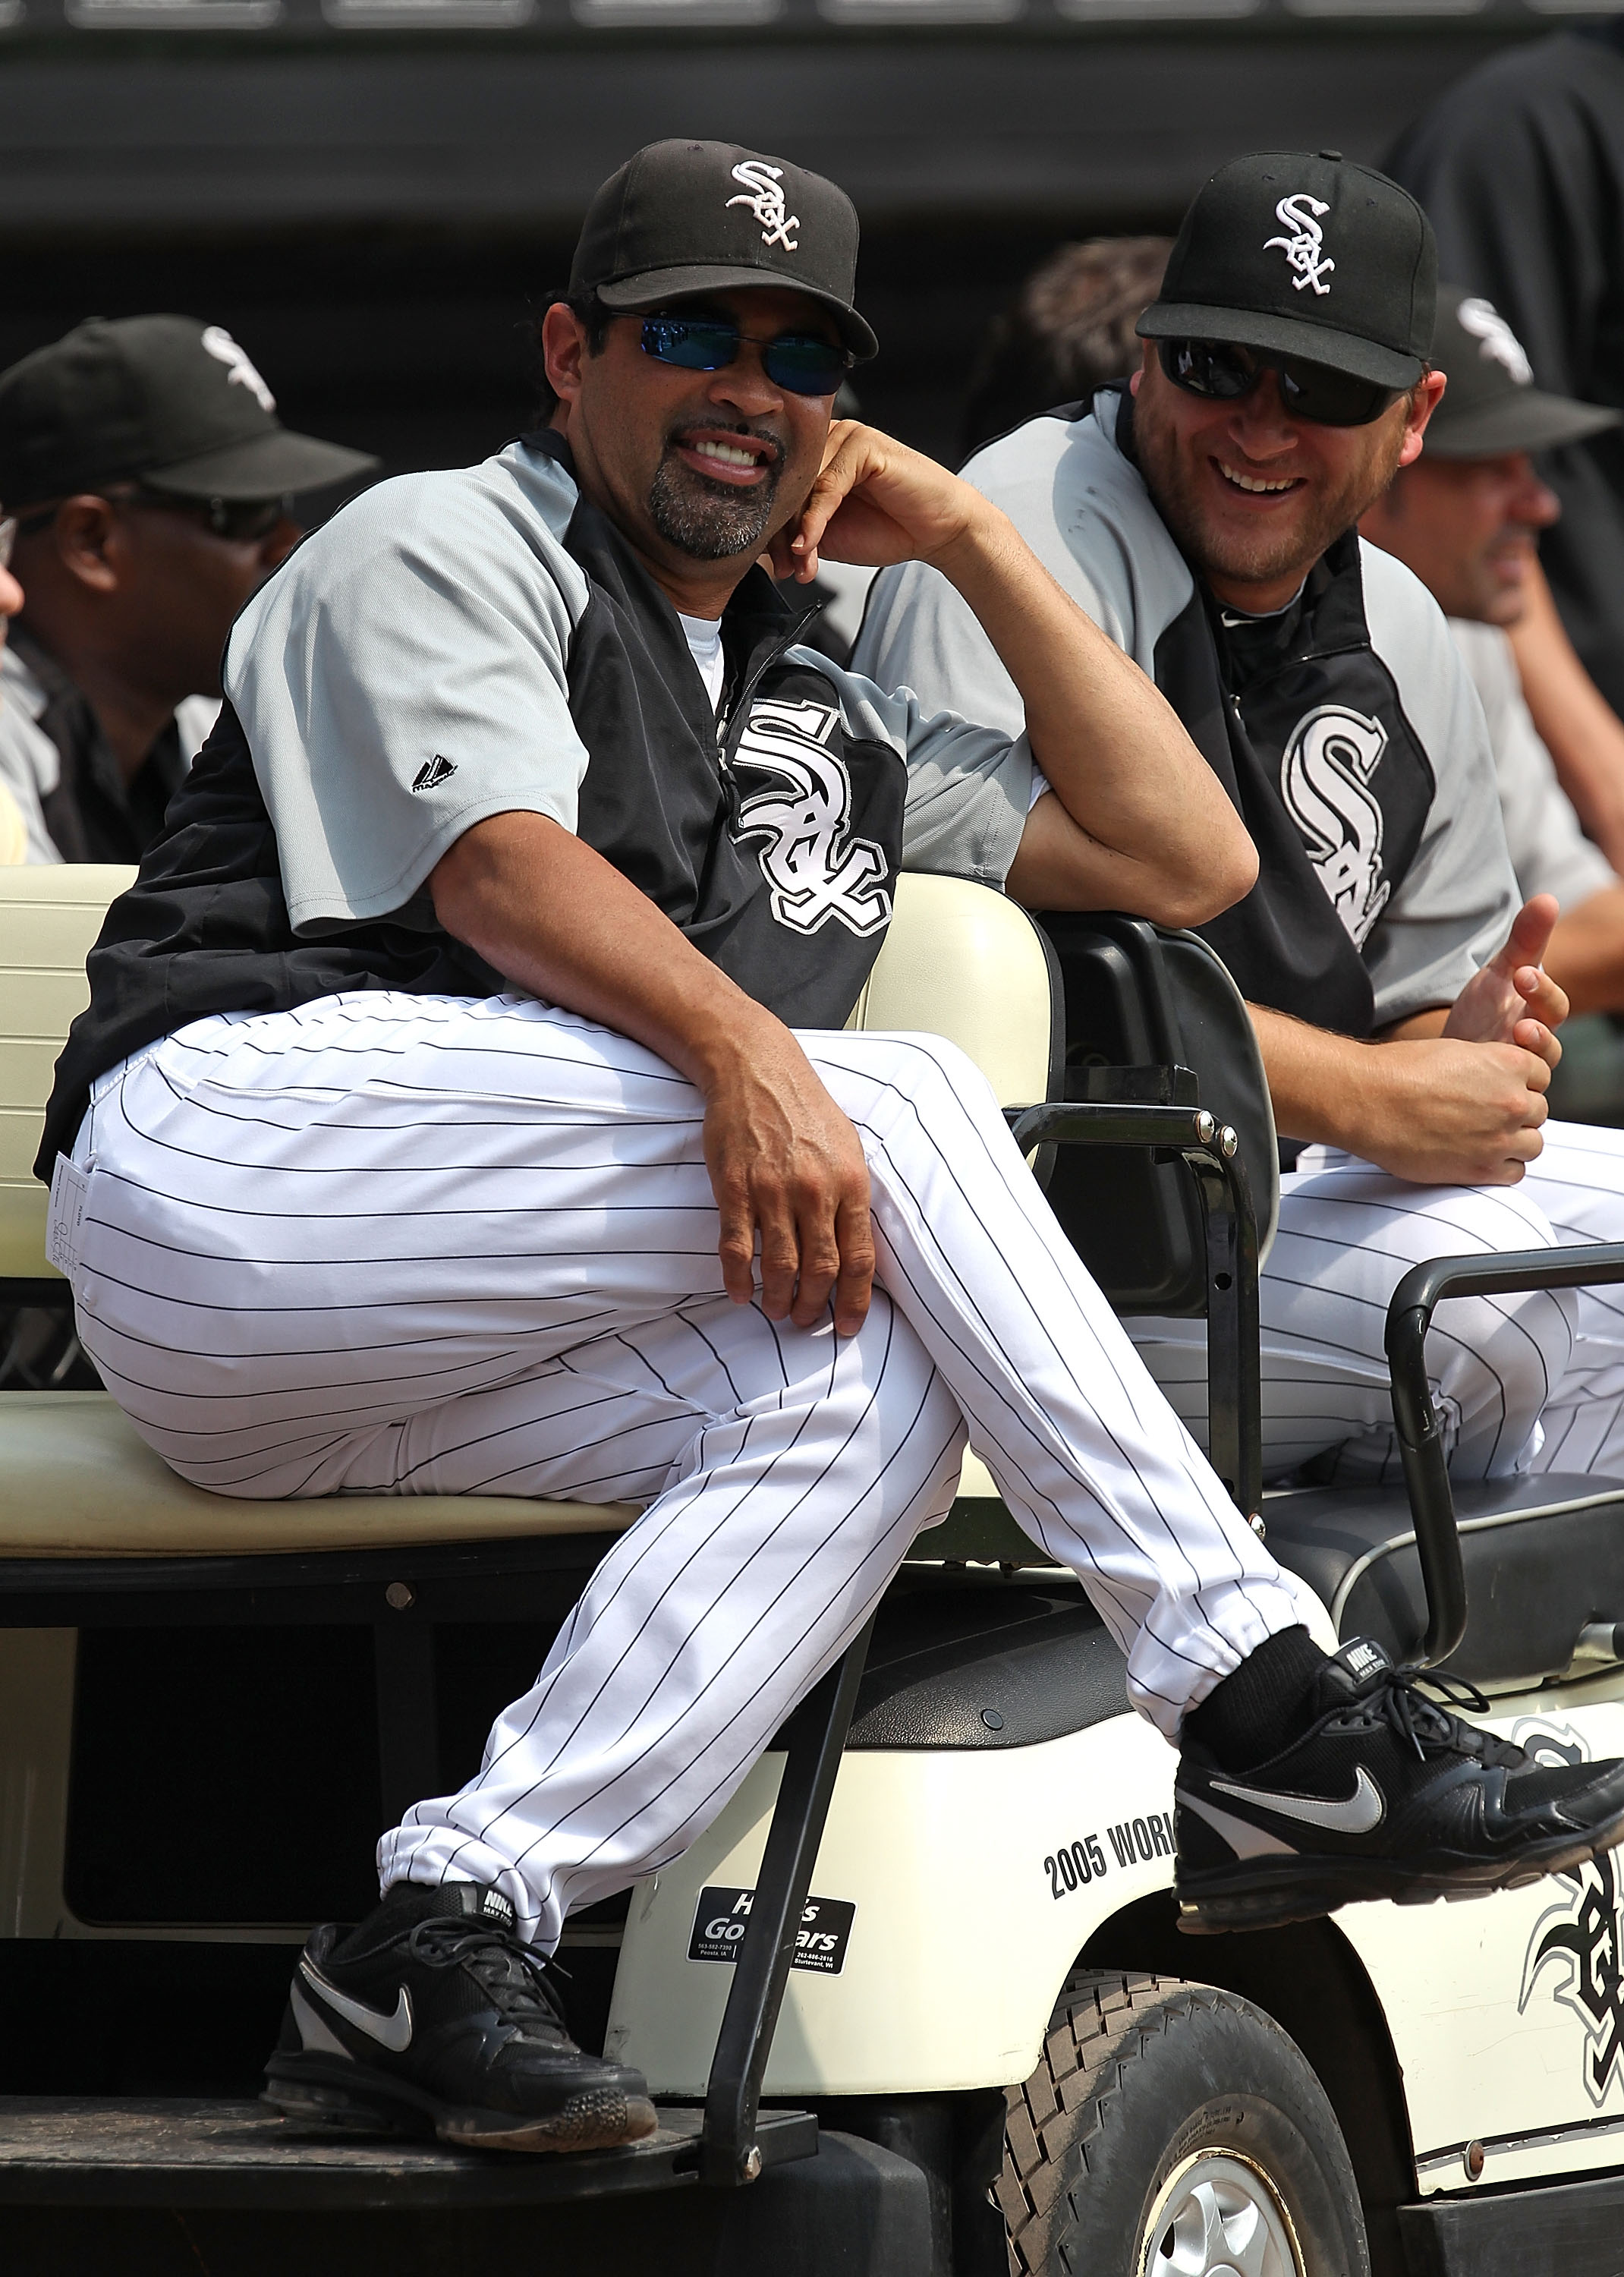 CHICAGO - AUGUST 29: Manager Ozzie Guillen #13 (L) and Mark Buehrle #56 of the Chicago White Sox enjoy a ceremony retiring former player Frank Thomas' number 35 before a game against the New York Yankees at U.S. Cellular Field on August 29, 2010 in Chicag